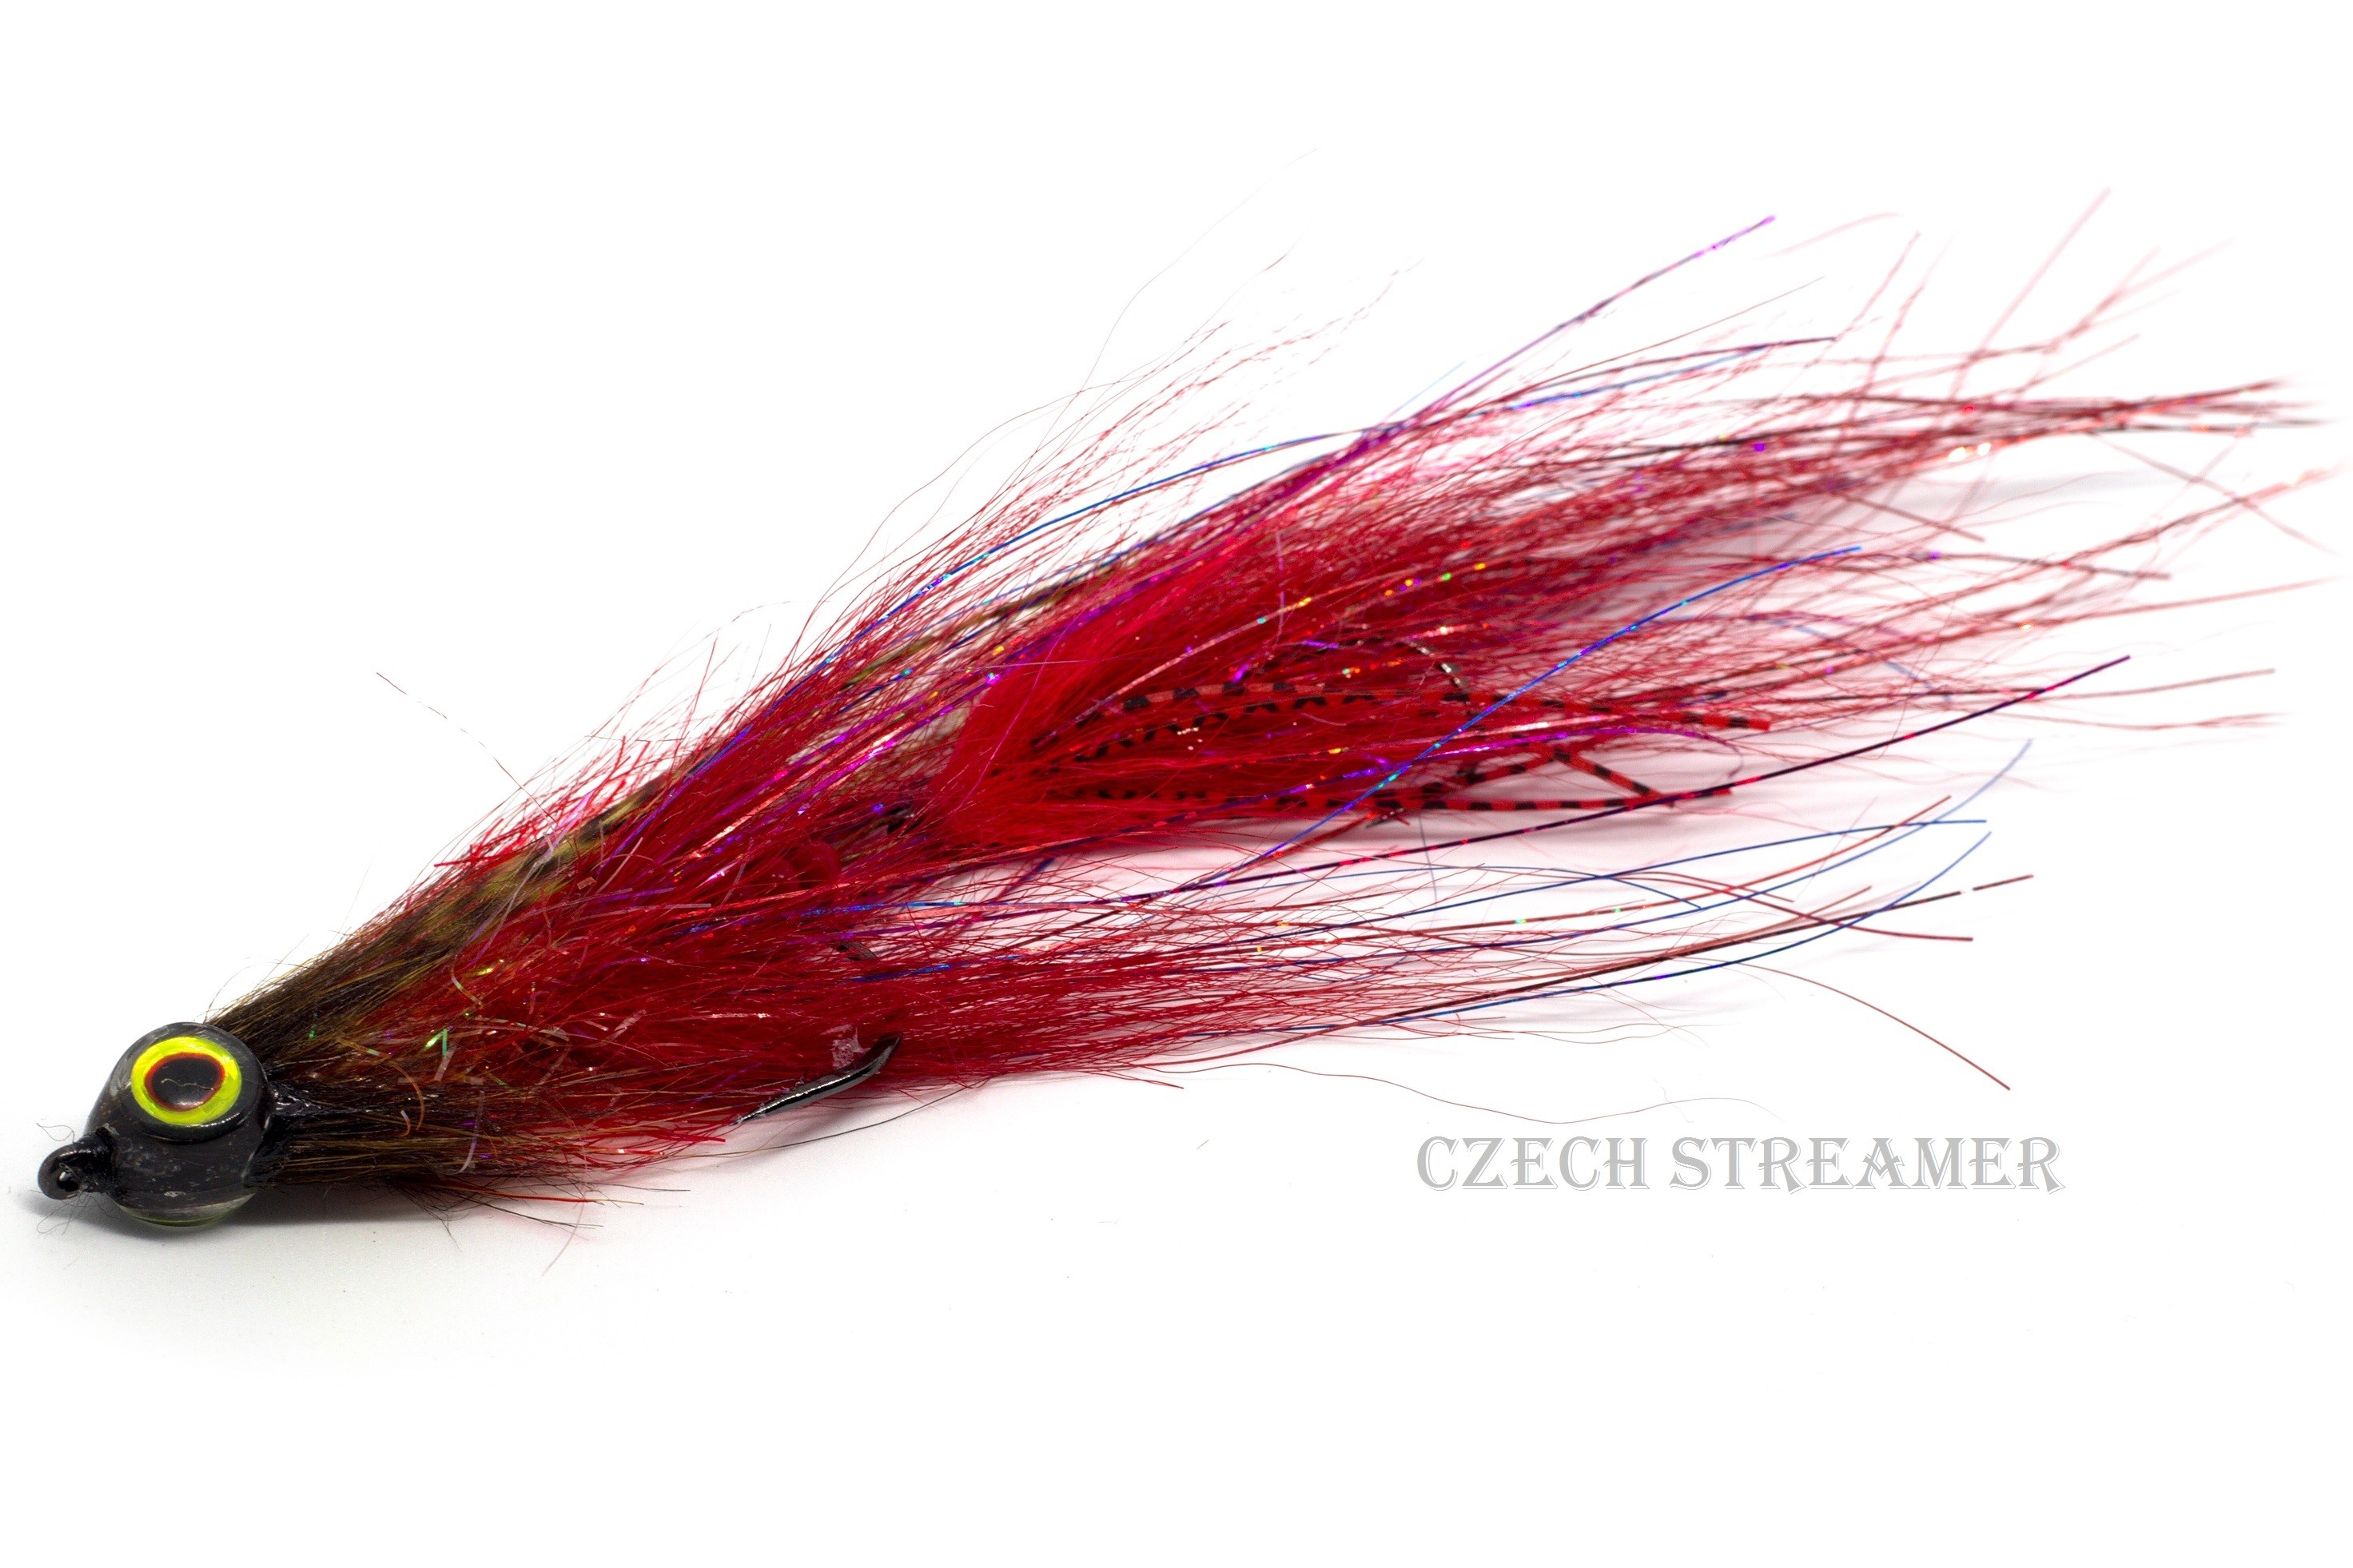 Czech Streamer Articulated